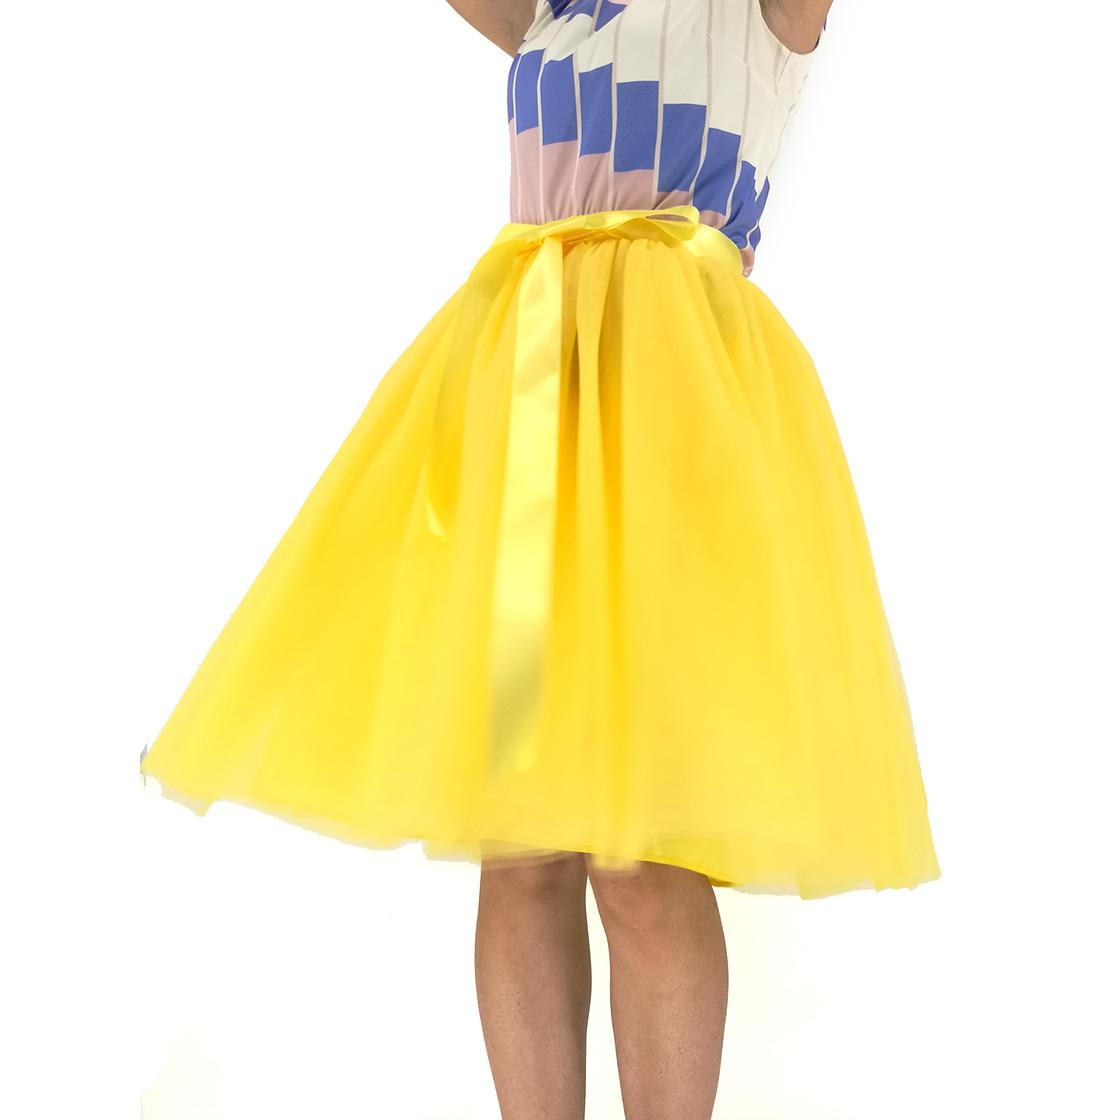 737bd7b198e5c 2019 Custom Made Tulle Skirts Womens Yellow Adult TUTU Skirt Elastic High  Waist Pleated Midi Skirt 60CM Length From Watch2013